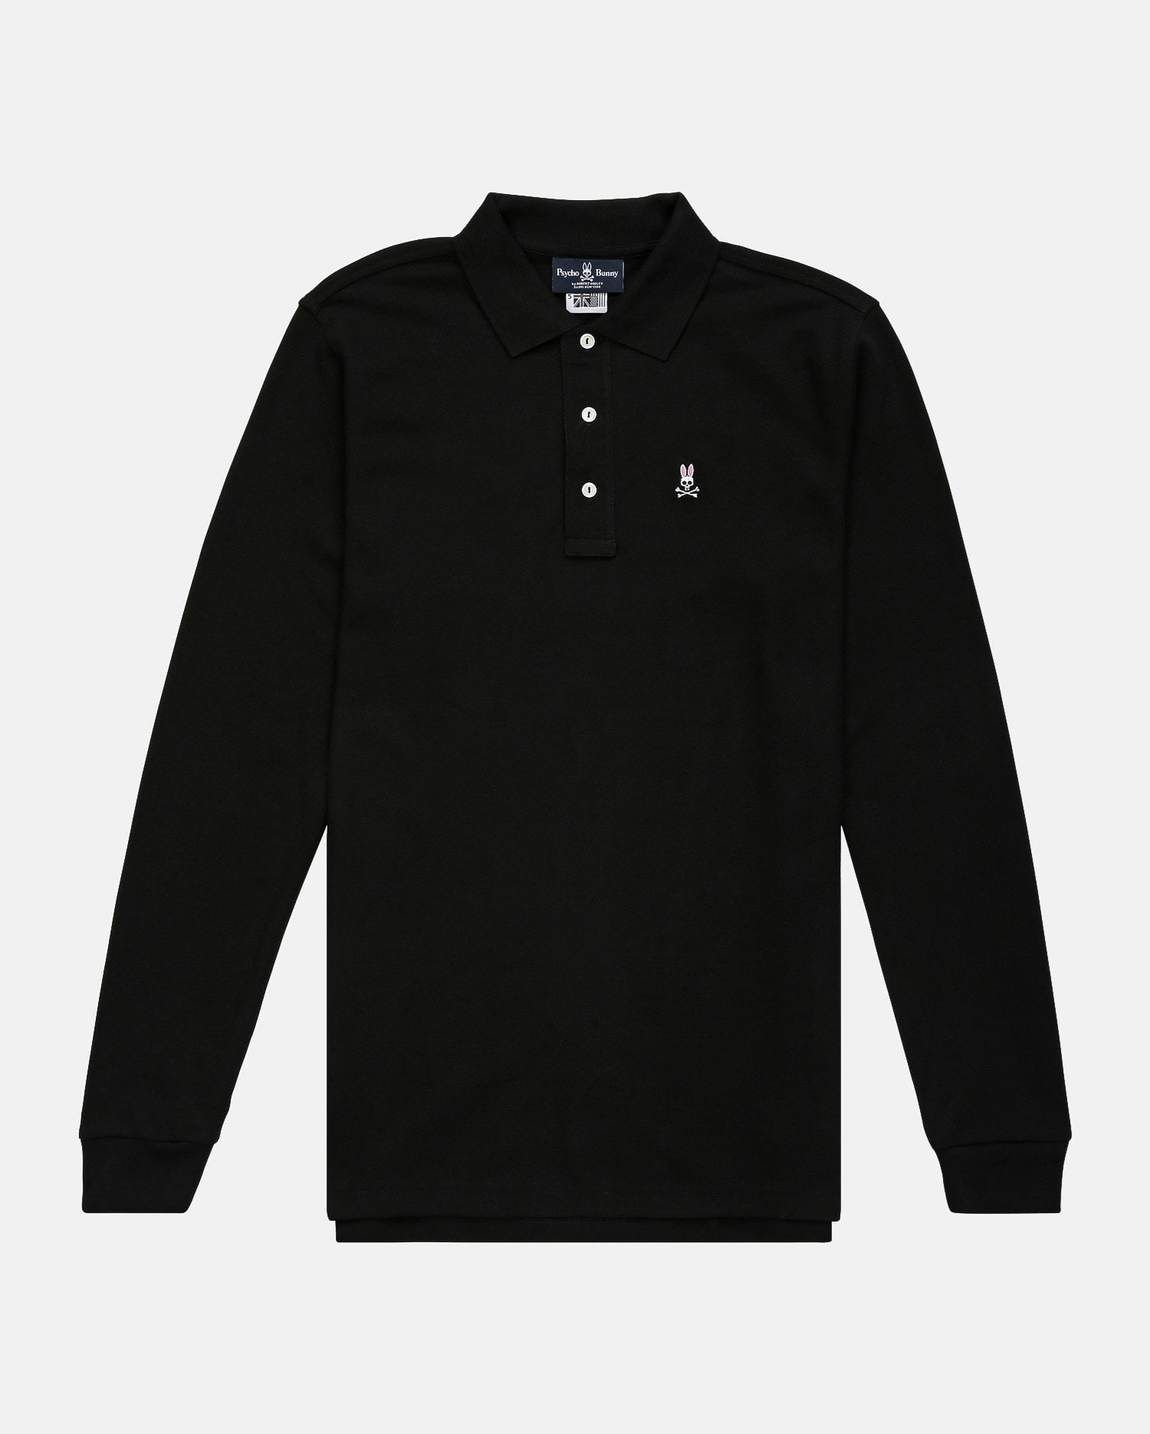 Psycho Bunny Black Long Sleeve Polo-Shirt-6546